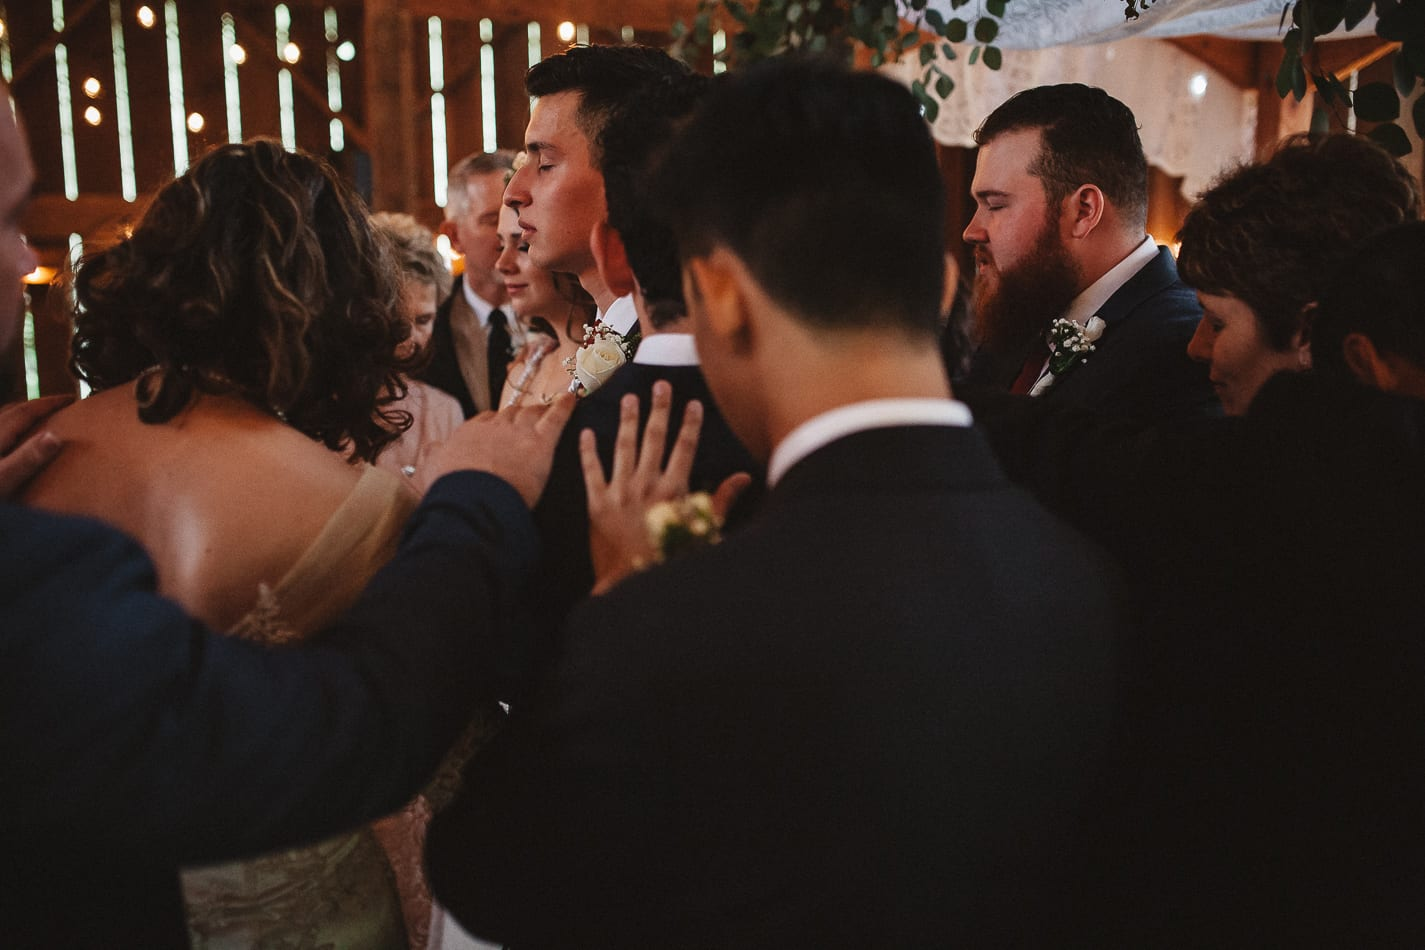 gover-ranch-redding-california-wedding-photographer-143